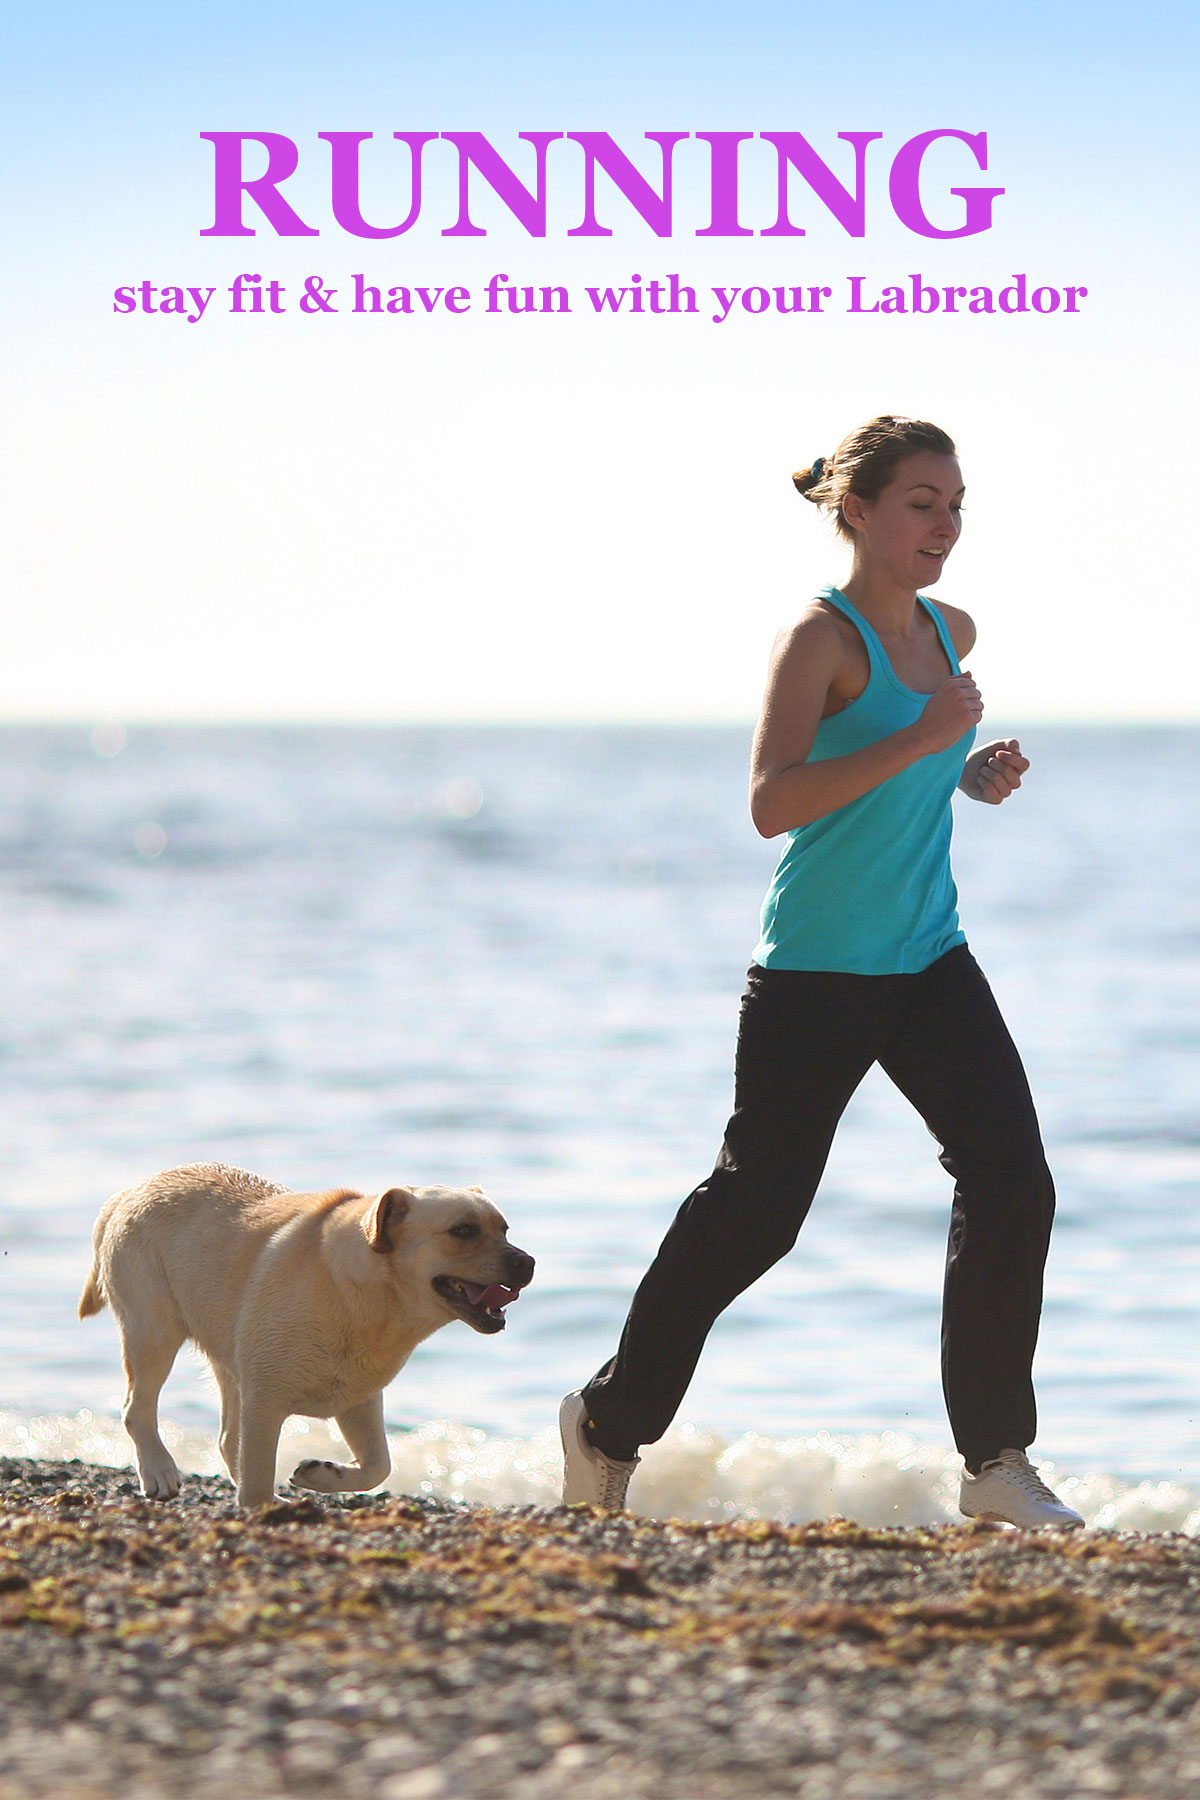 We take a look at whether Labs are good running companions, and give you all the information you will need to go running with your dog